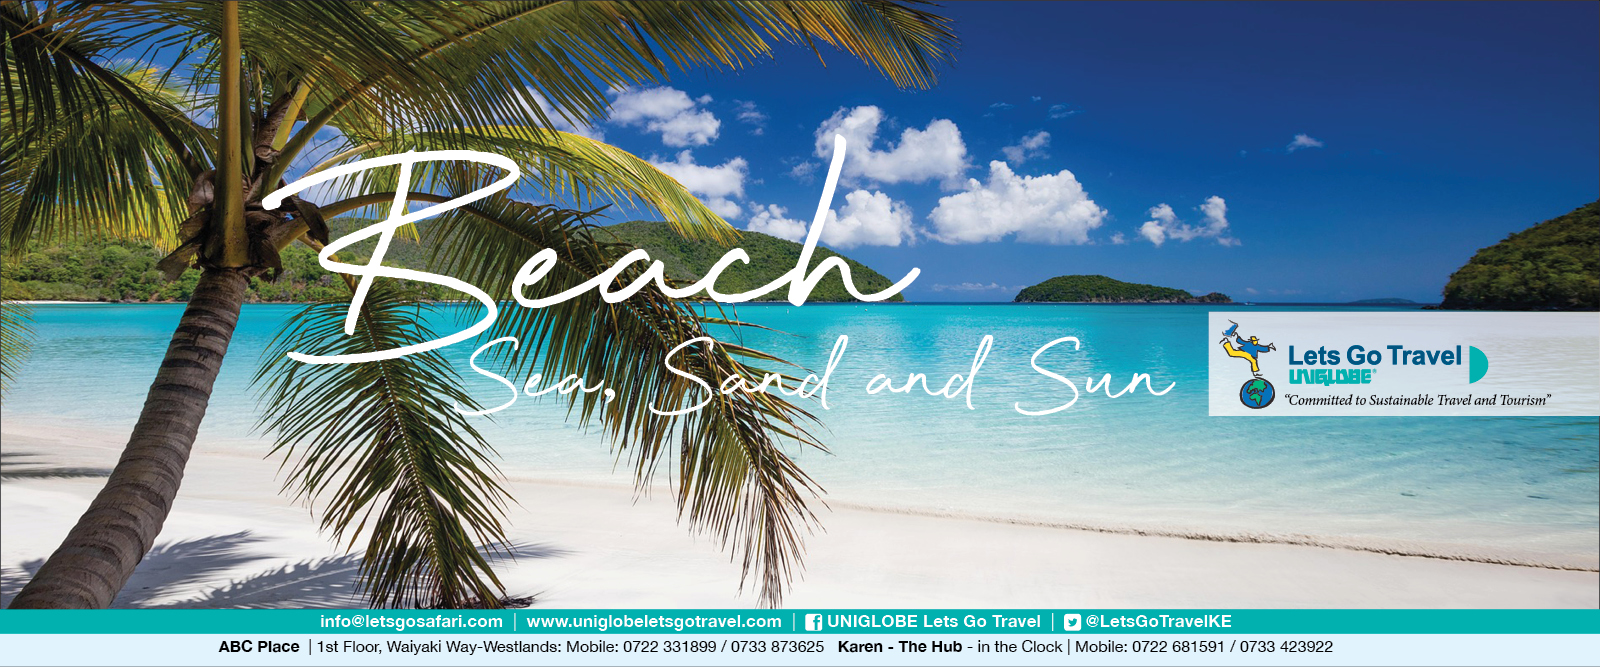 Lets Go Travel - your Sea, Sand and Sun specialist!